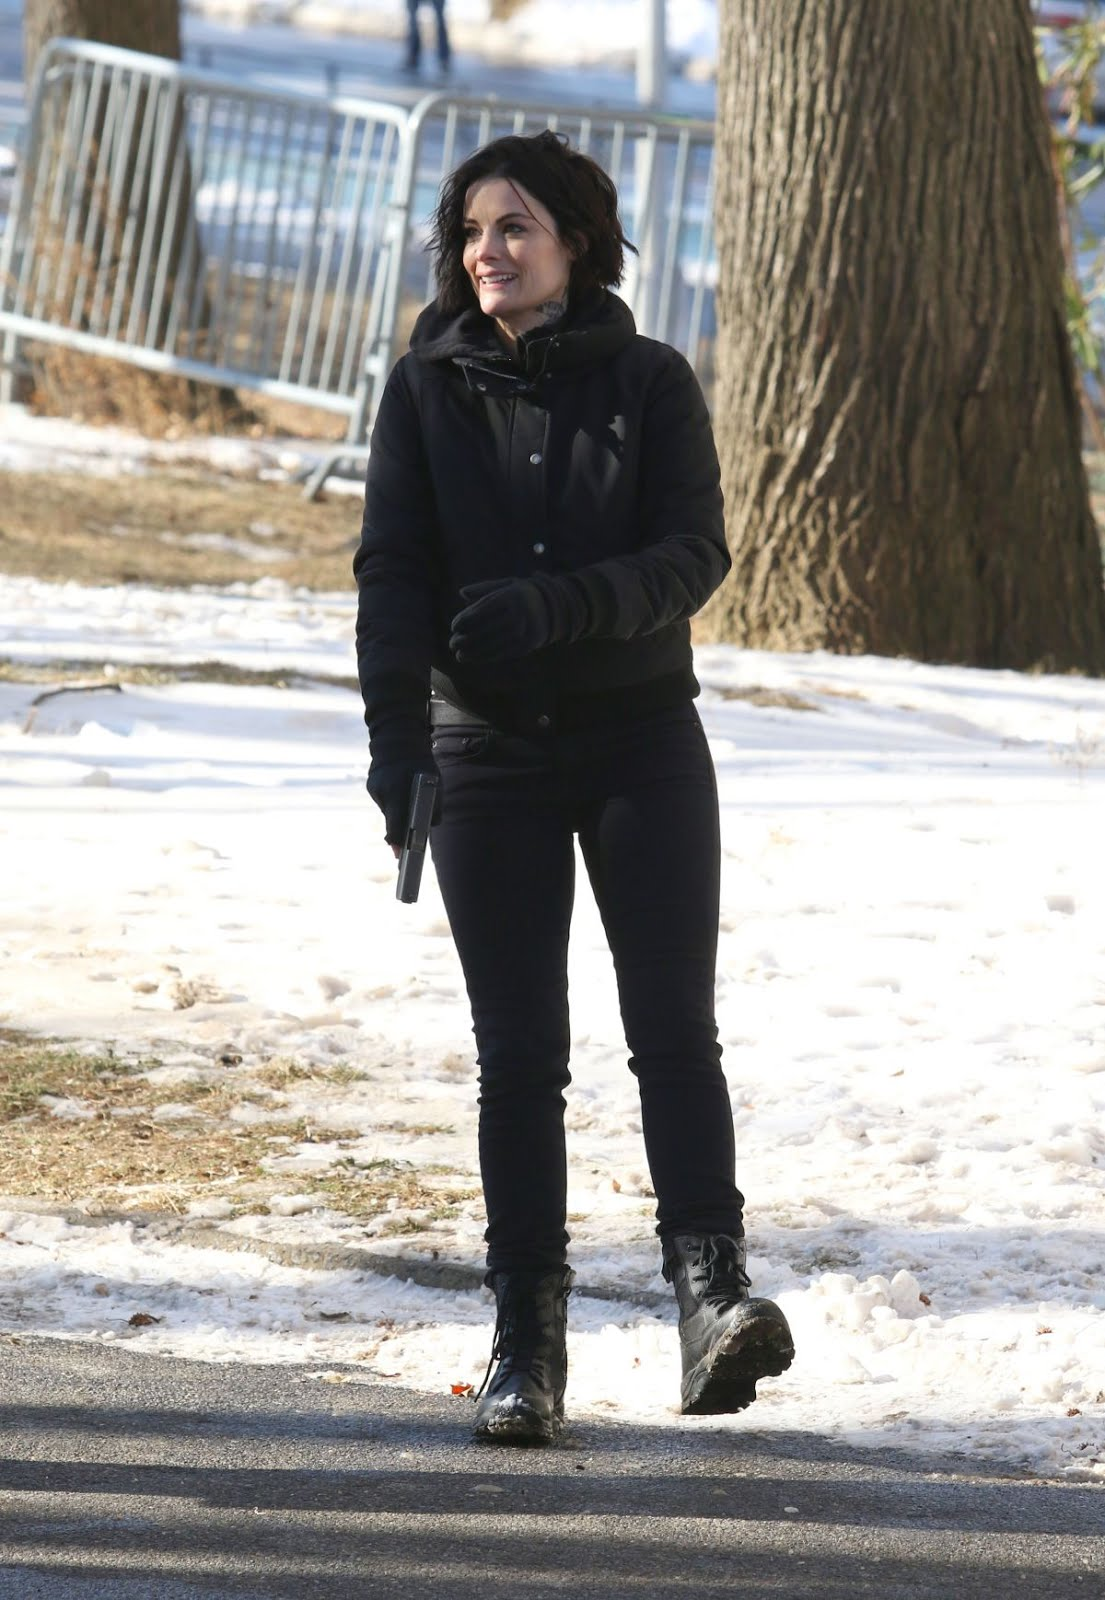 Jaimie Alexander On The Set Of Blindspot In Astoria Park In New York 2018